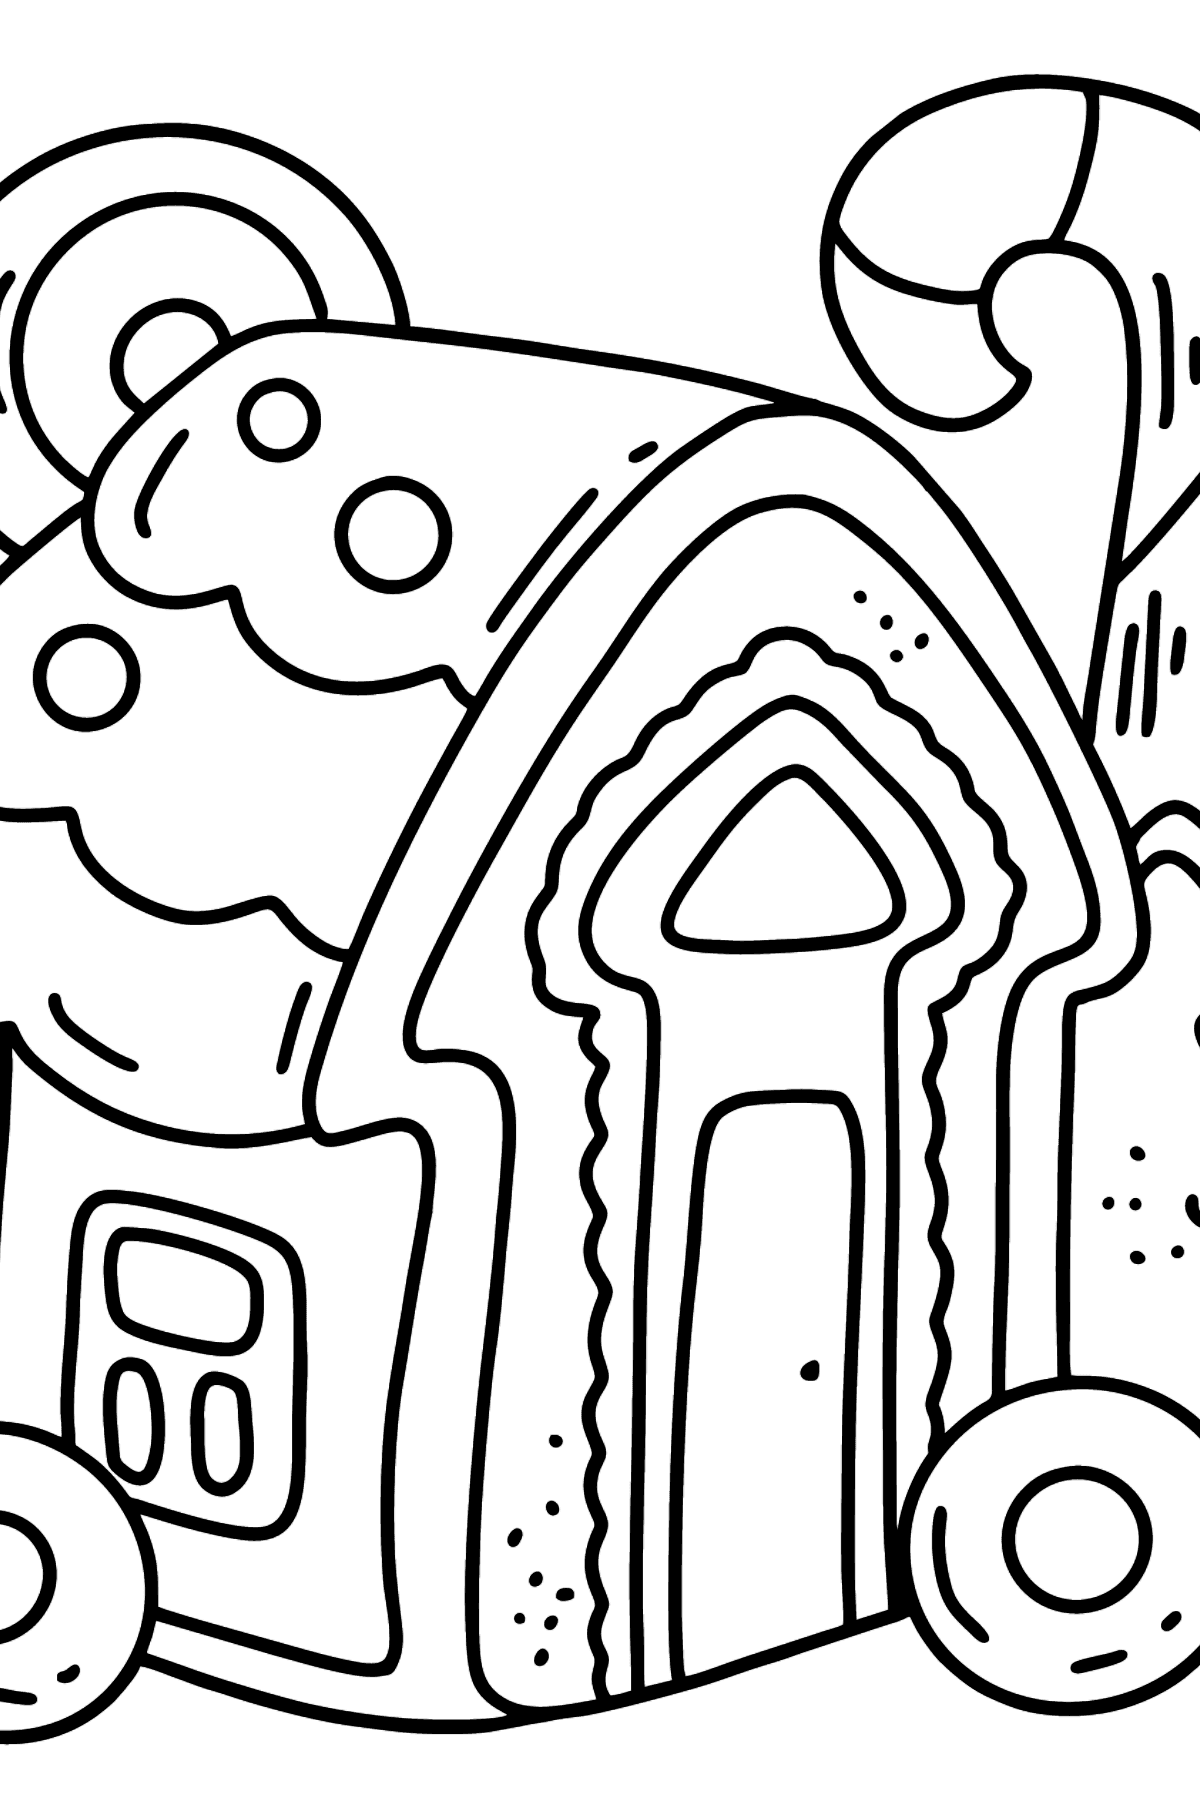 Gingerbread House with Candy Stick coloring page - Coloring Pages for Kids